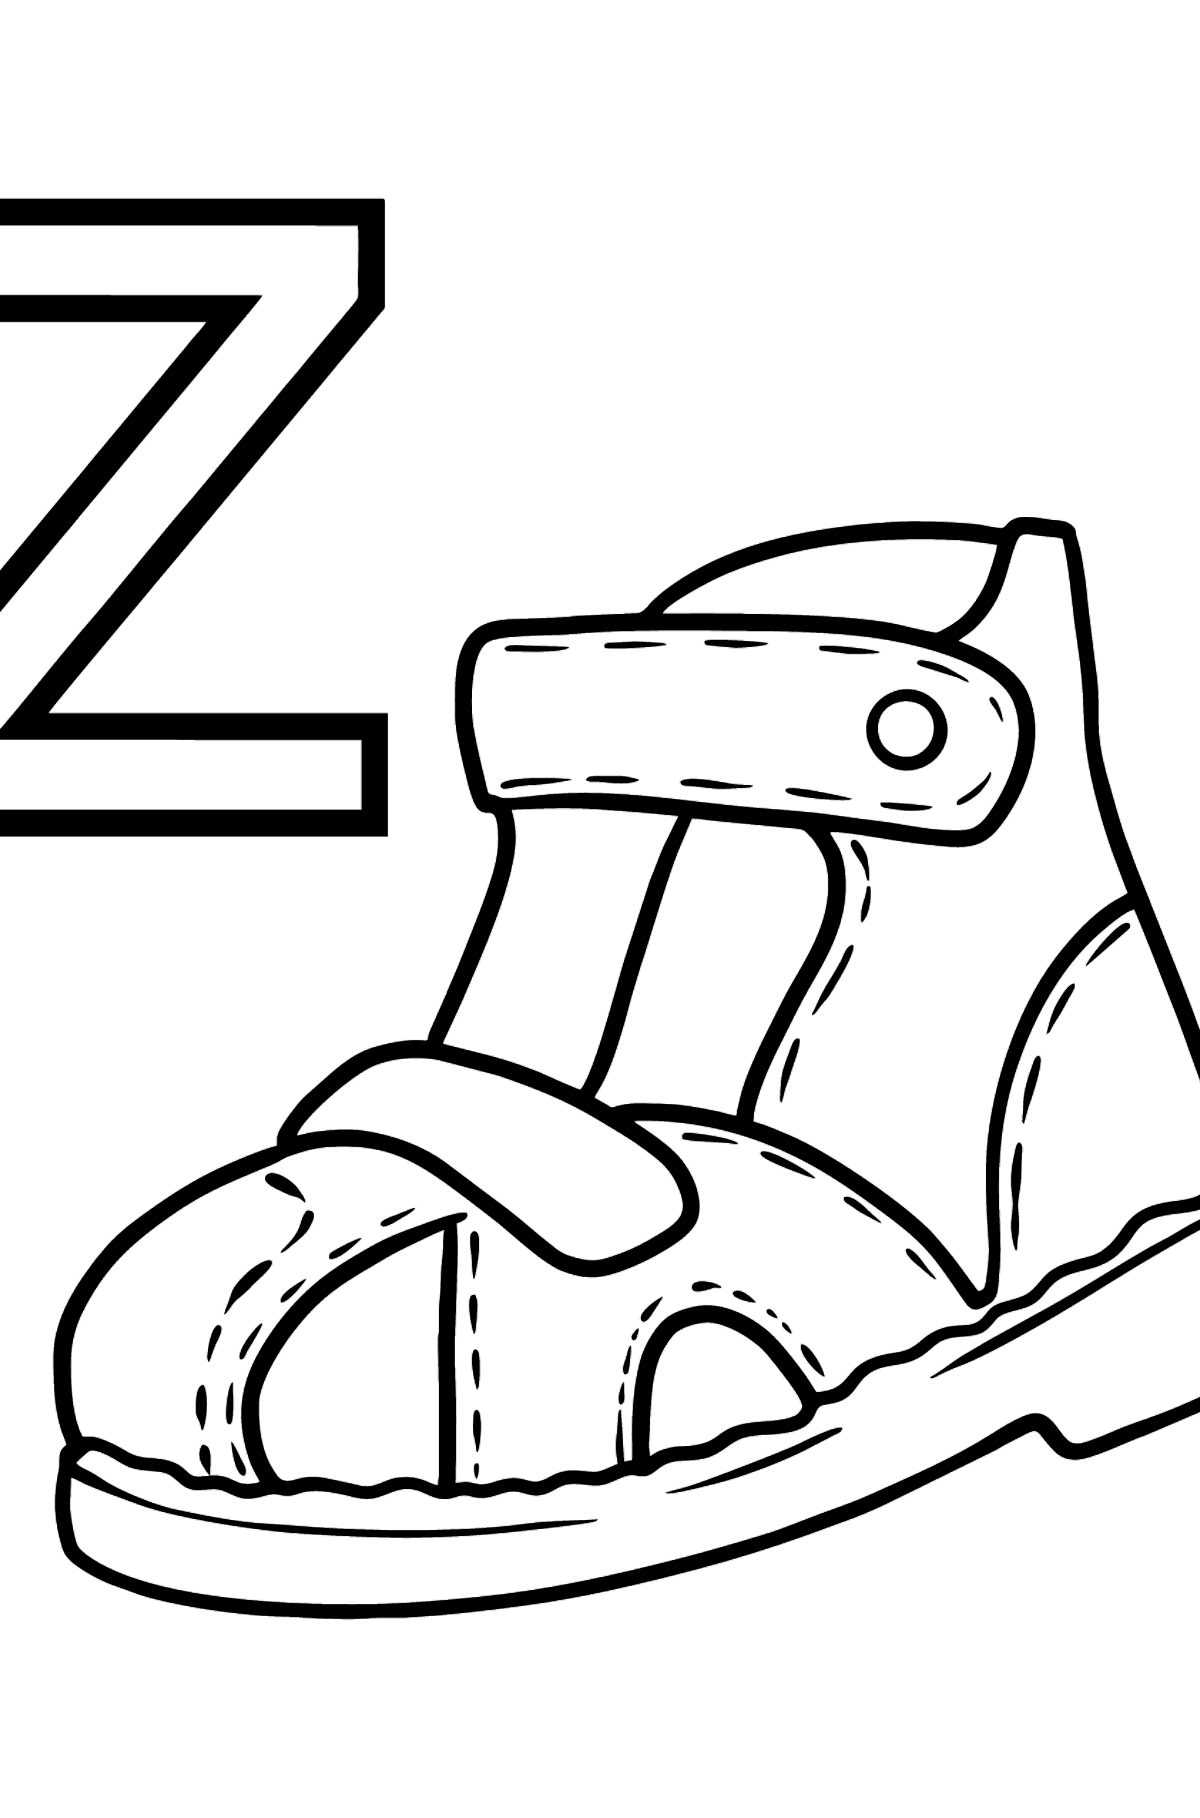 Spanish Letter Z coloring pages - ZAPATO - Coloring Pages for Kids